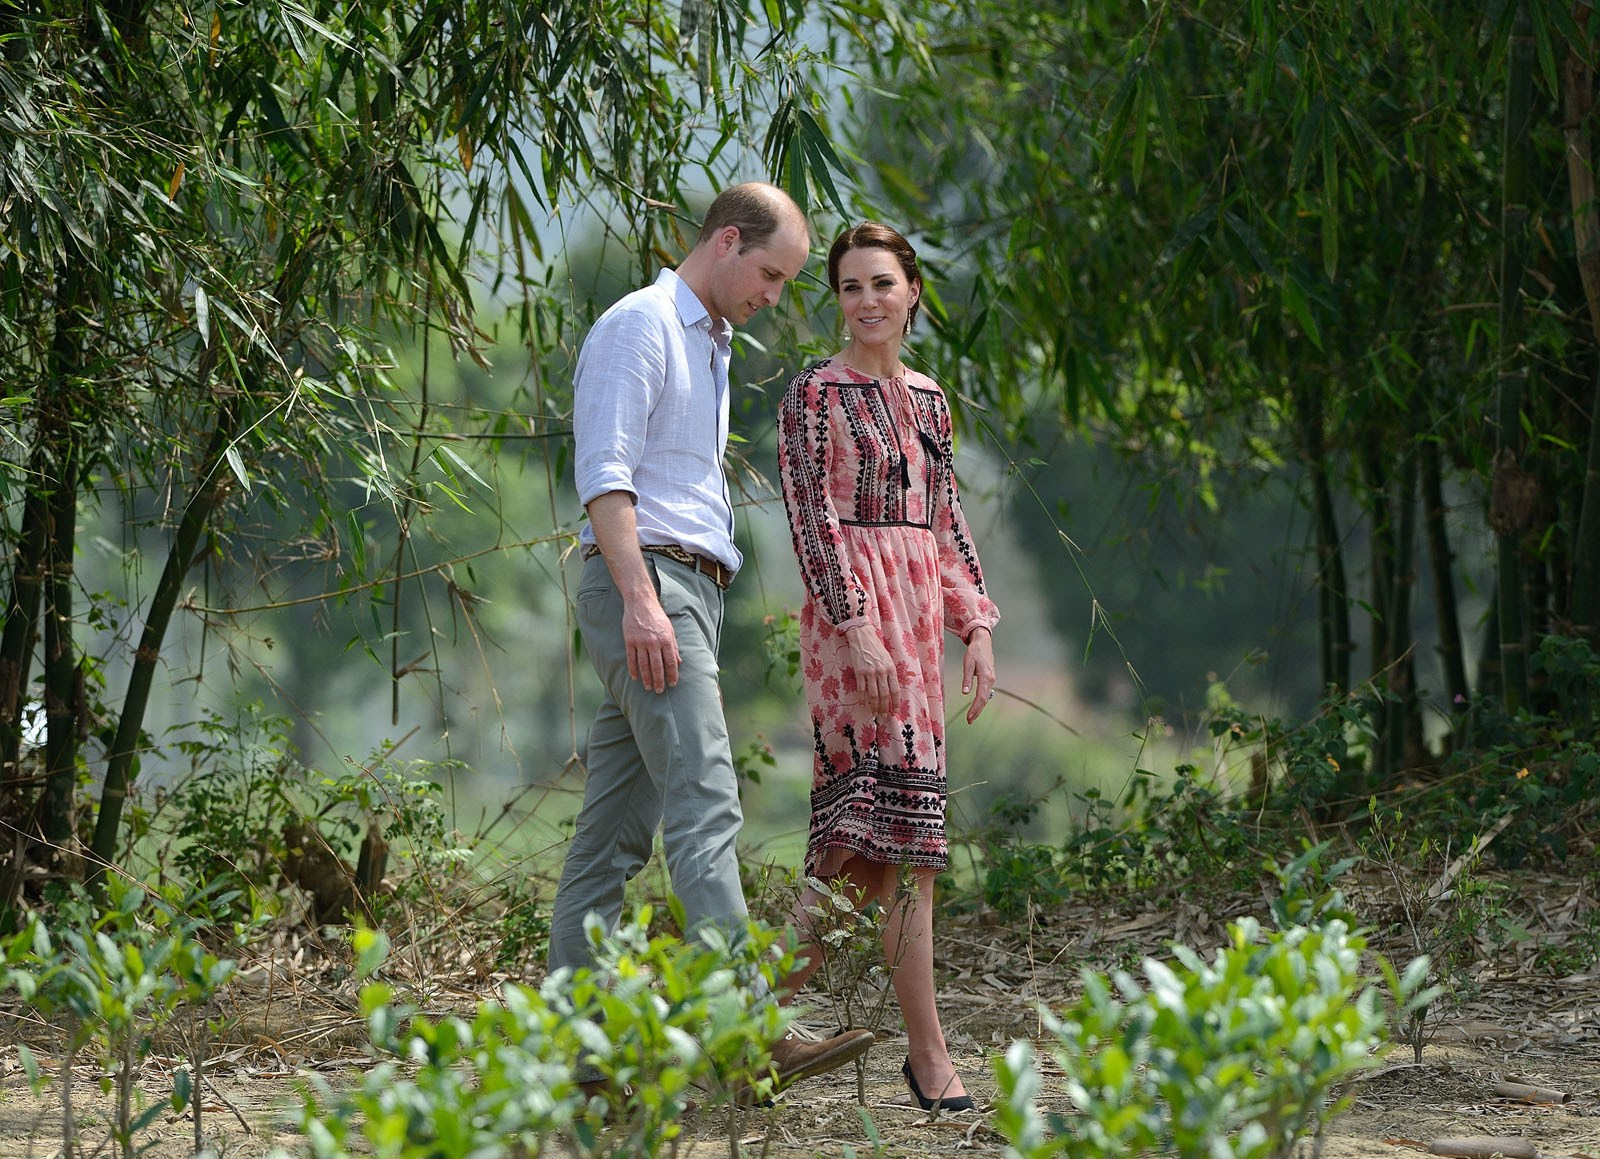 When the Duchess chose a high street dress from Topshop for her trip to India earlier this year, the boho-style frock sold out in minutes. There's no denying the Duchess is a fashion powerhouse!